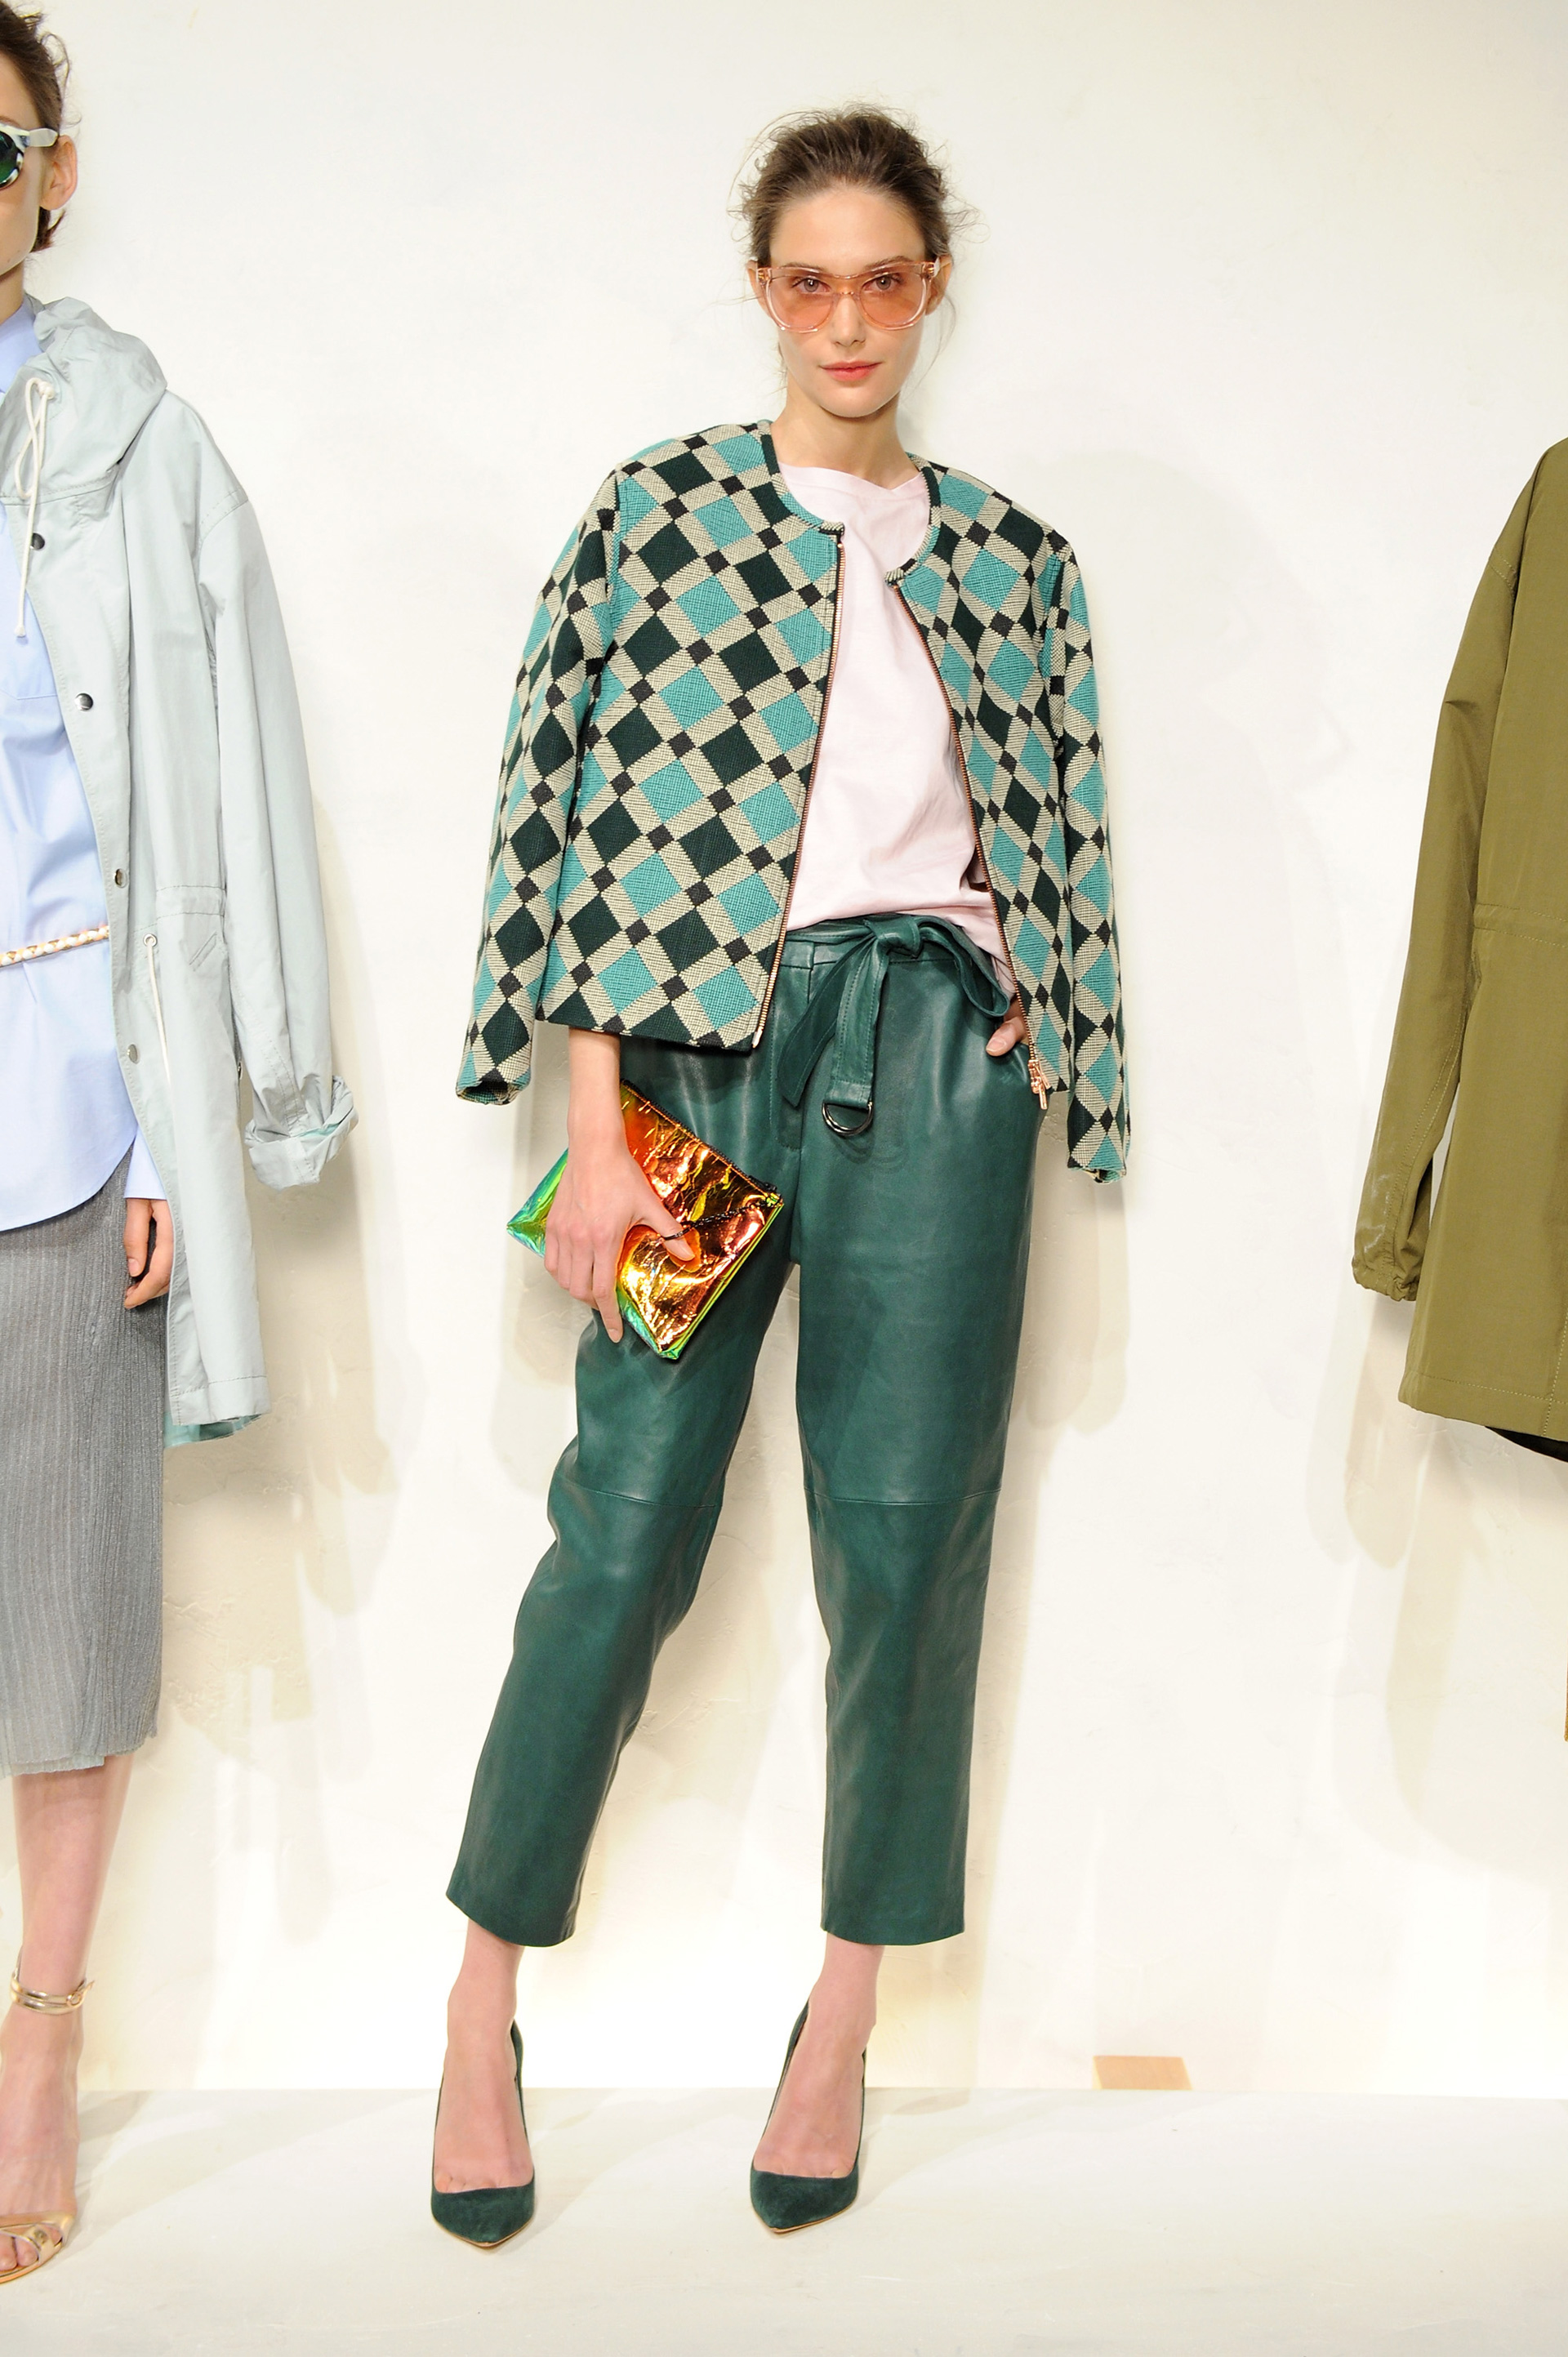 2015 J.Crew collection pieces 8